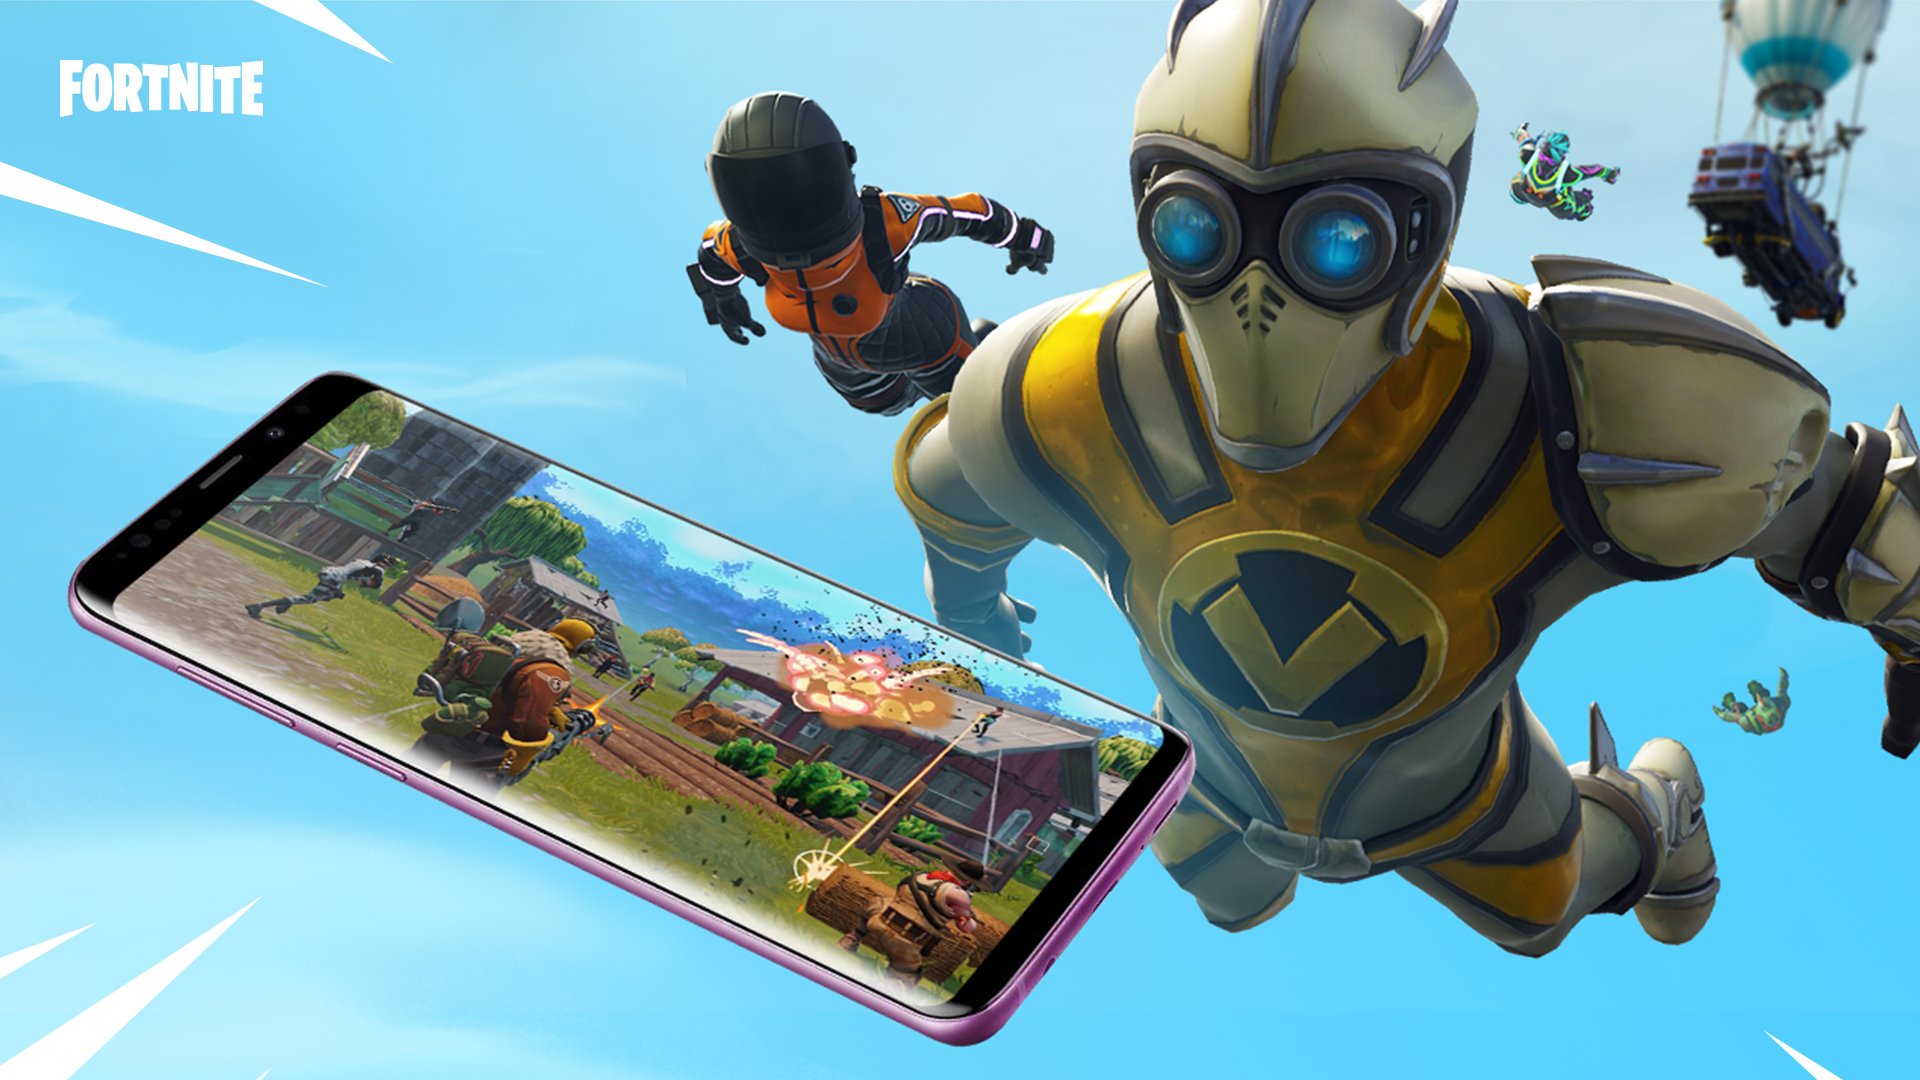 Fortnite' Android: How to Fix Waiting List Error | Inverse